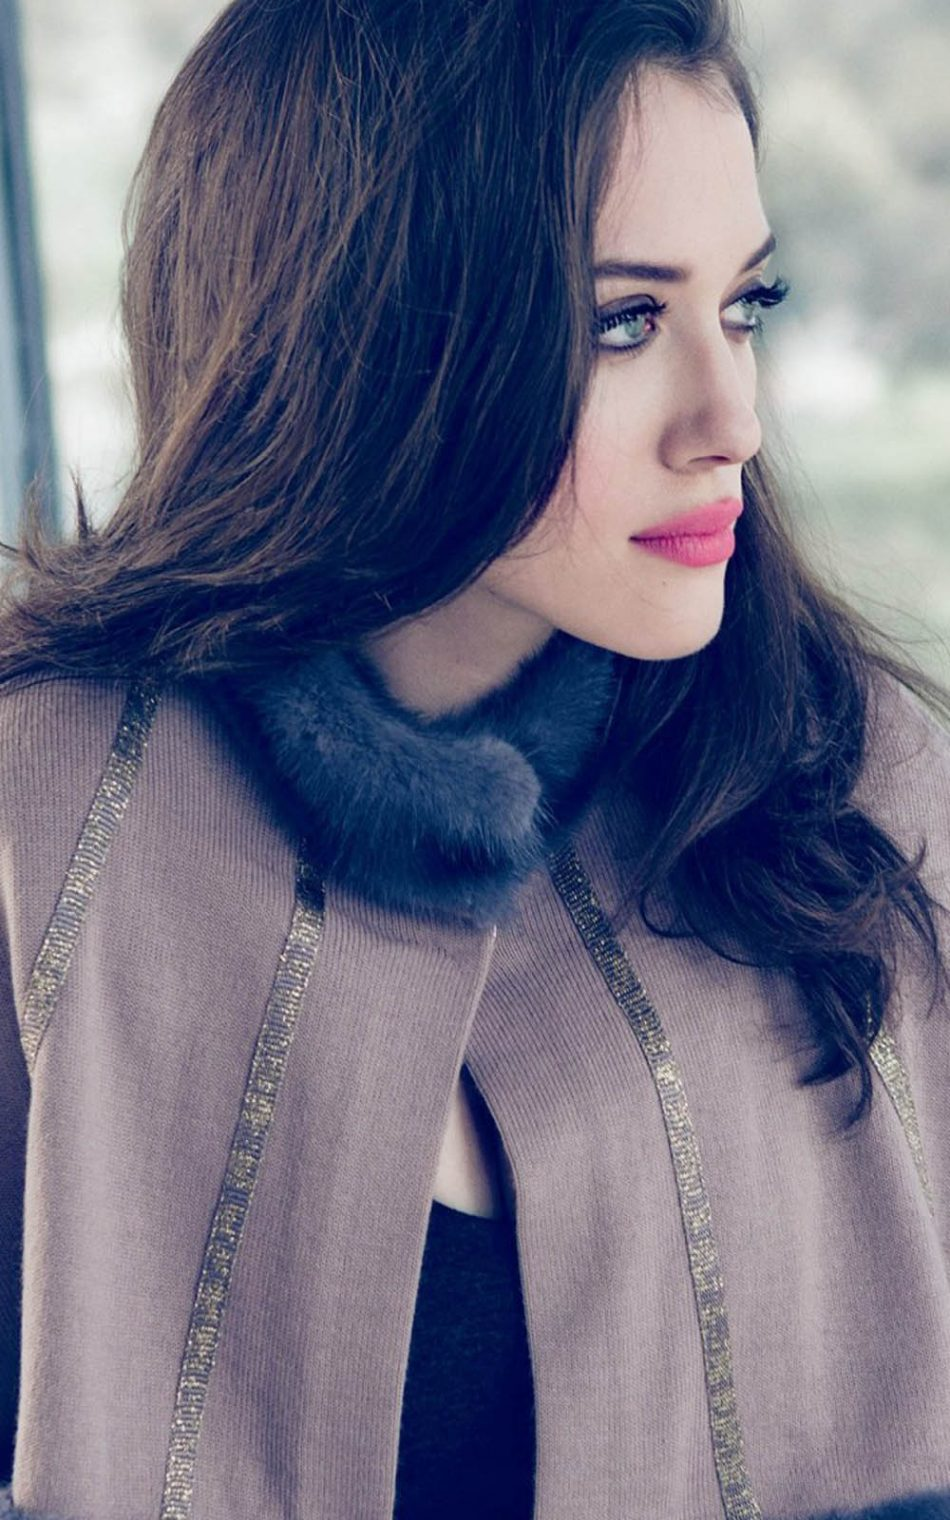 Kat Dennings 2017 Photoshoot HD Mobile Wallpaper